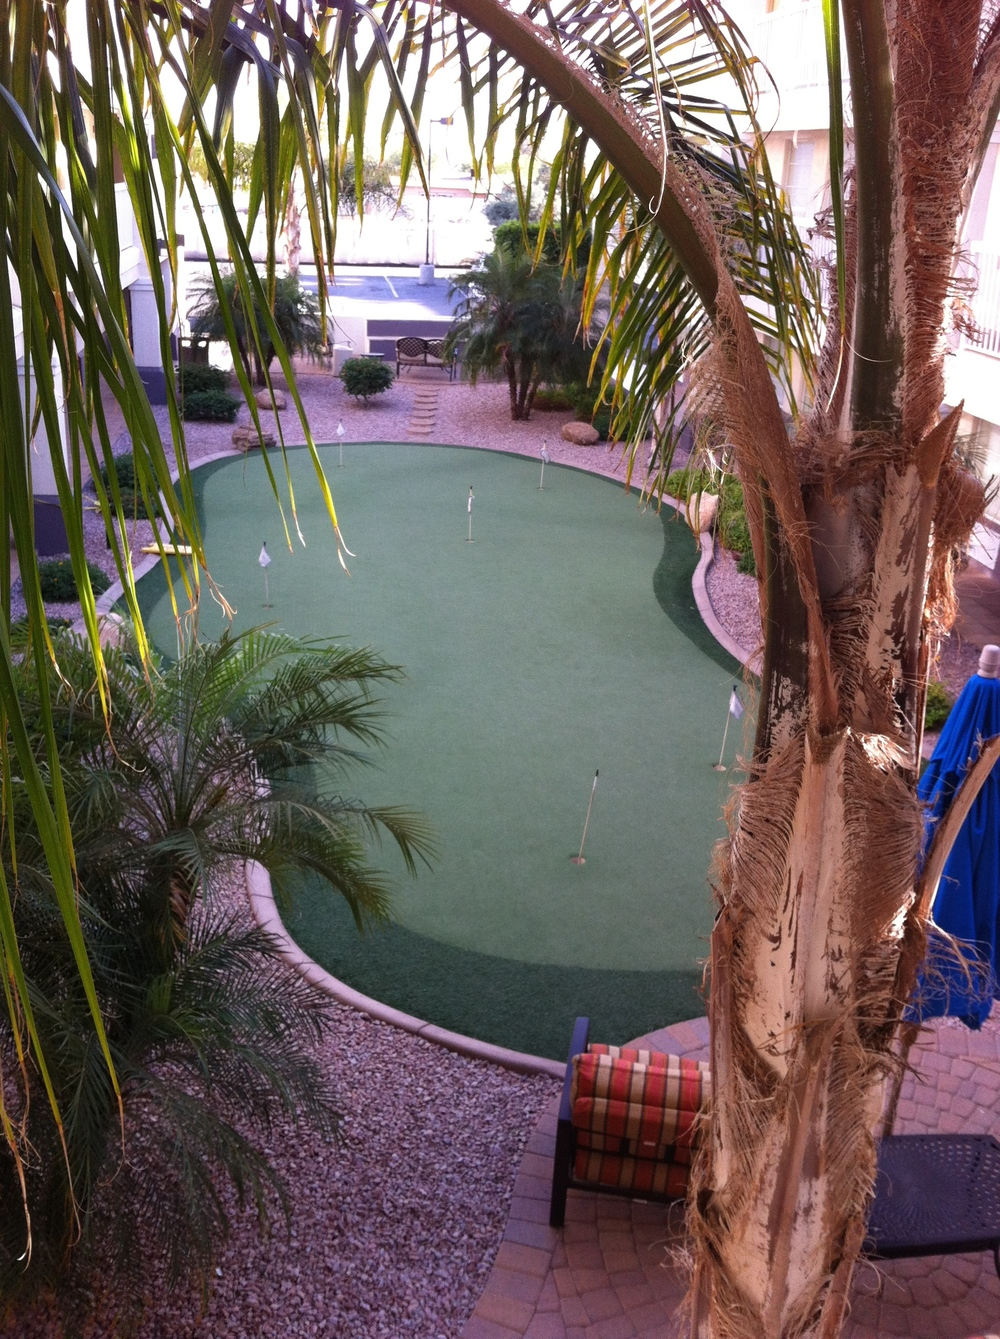 Your own private putting green....12+ on the stimpmeter.